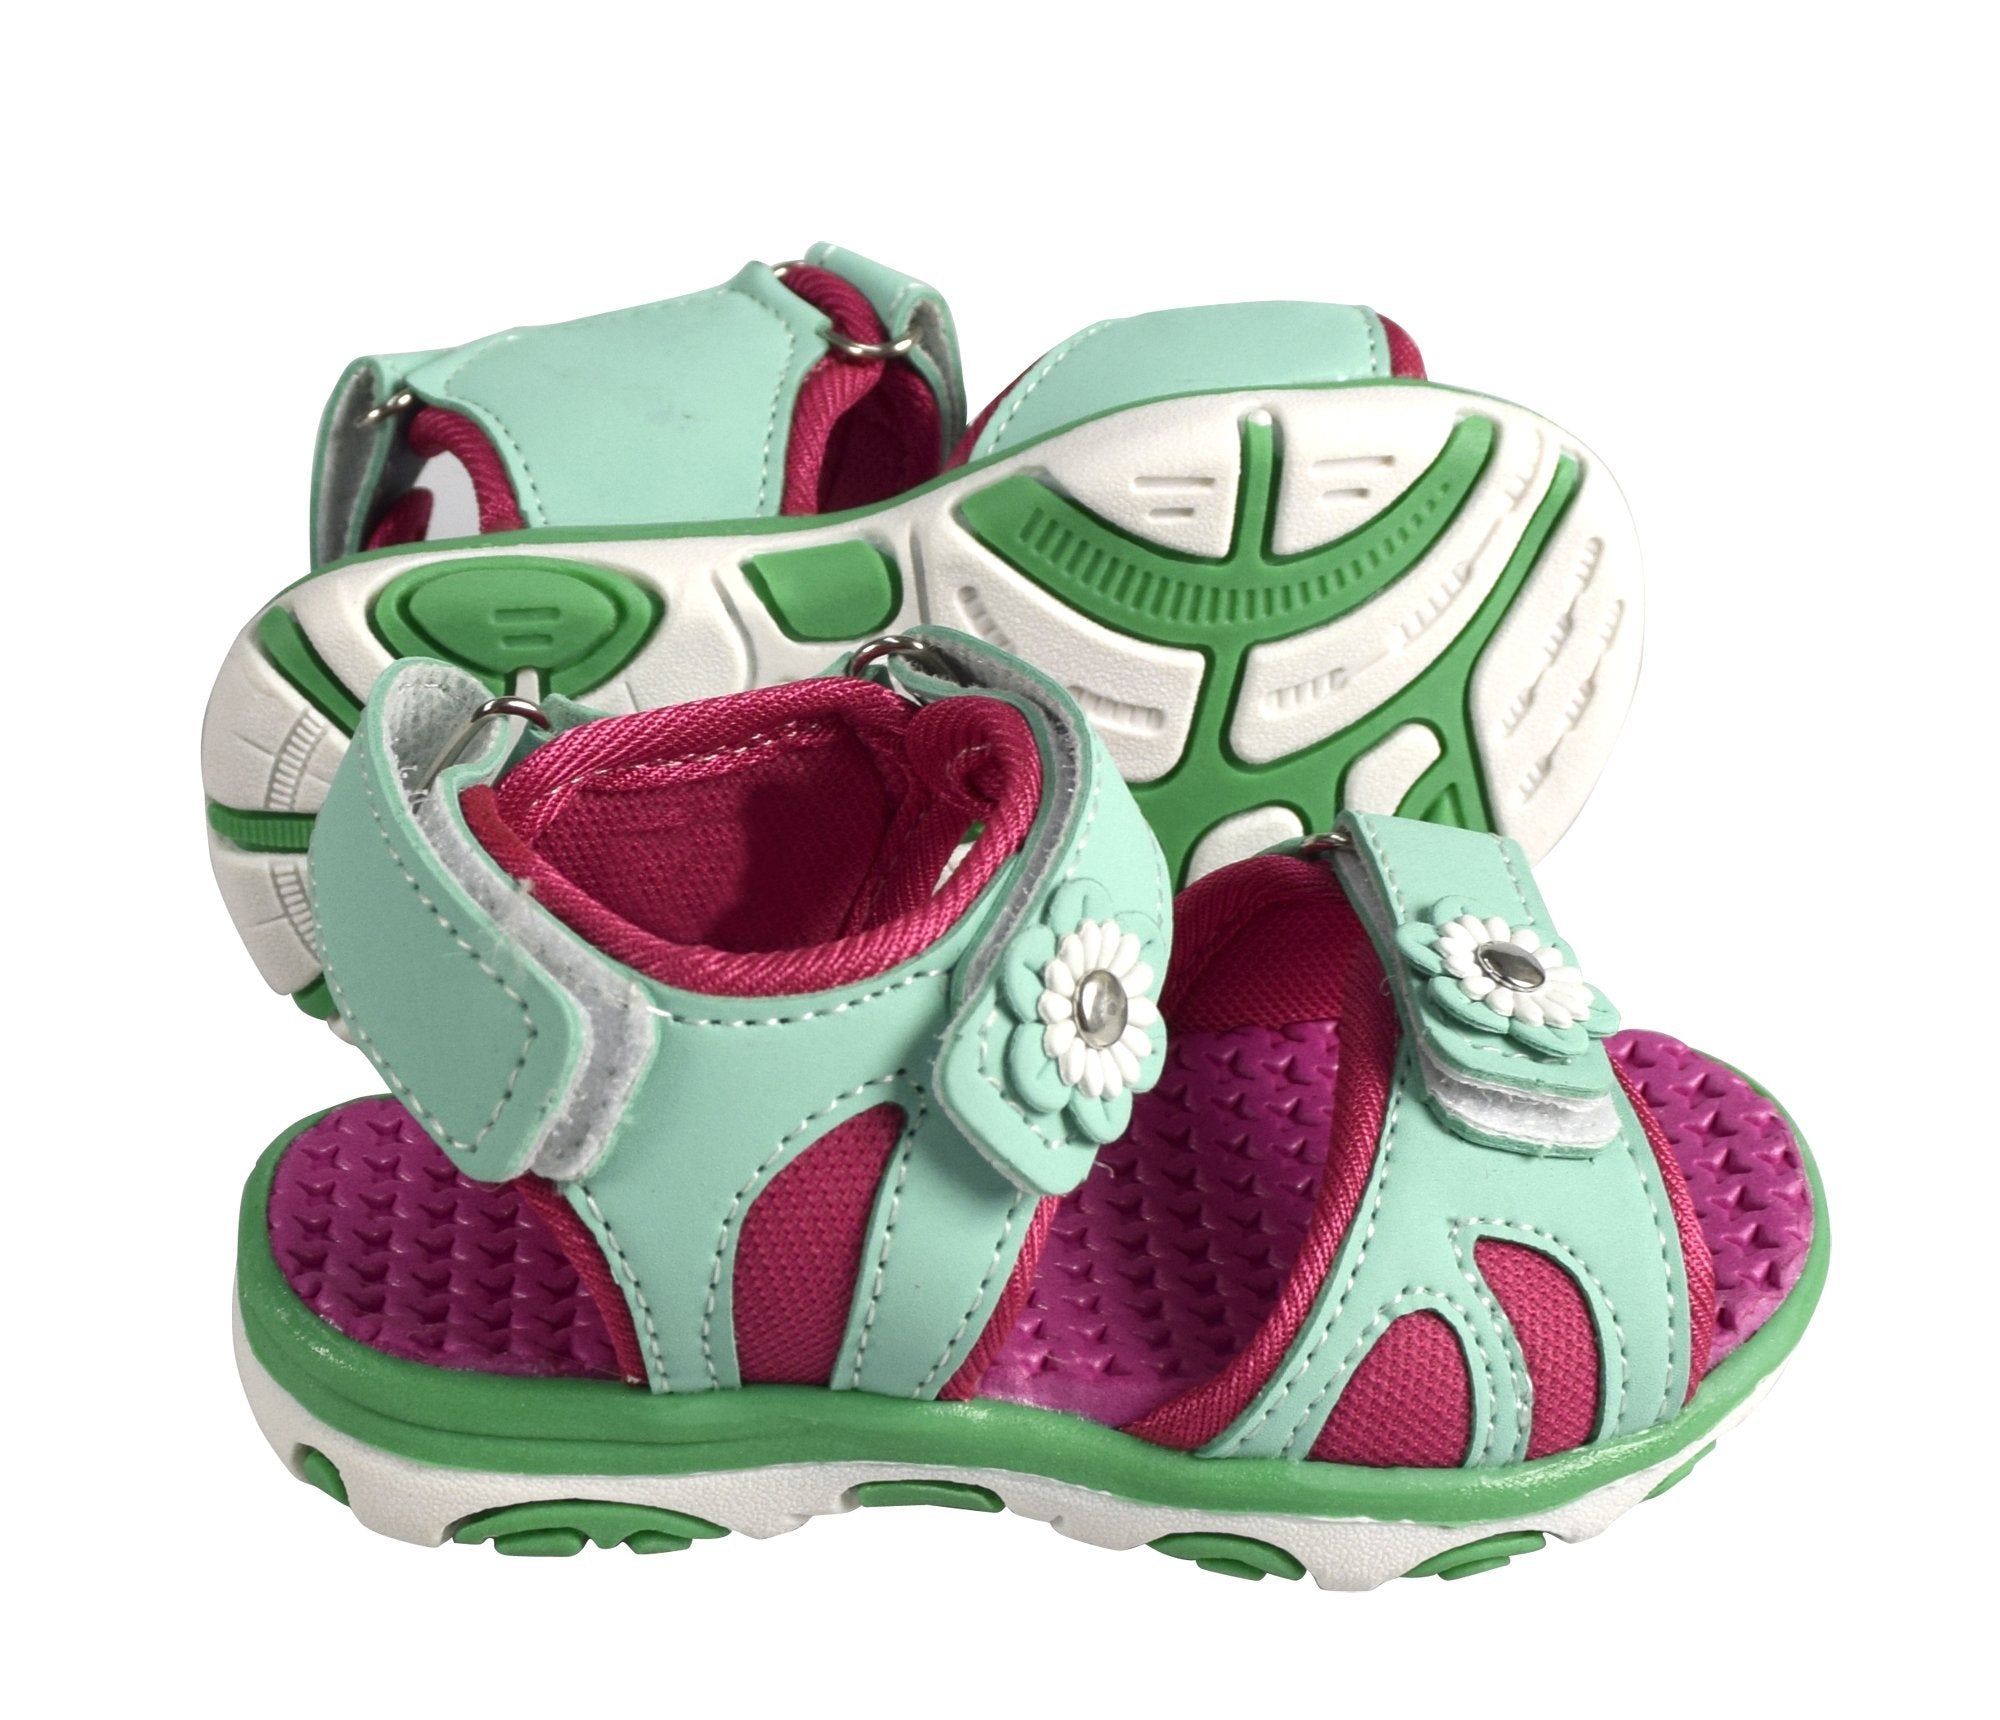 Shoes-Kids Toddler Open Toe Beach Water Shoes  Sandals in Colors